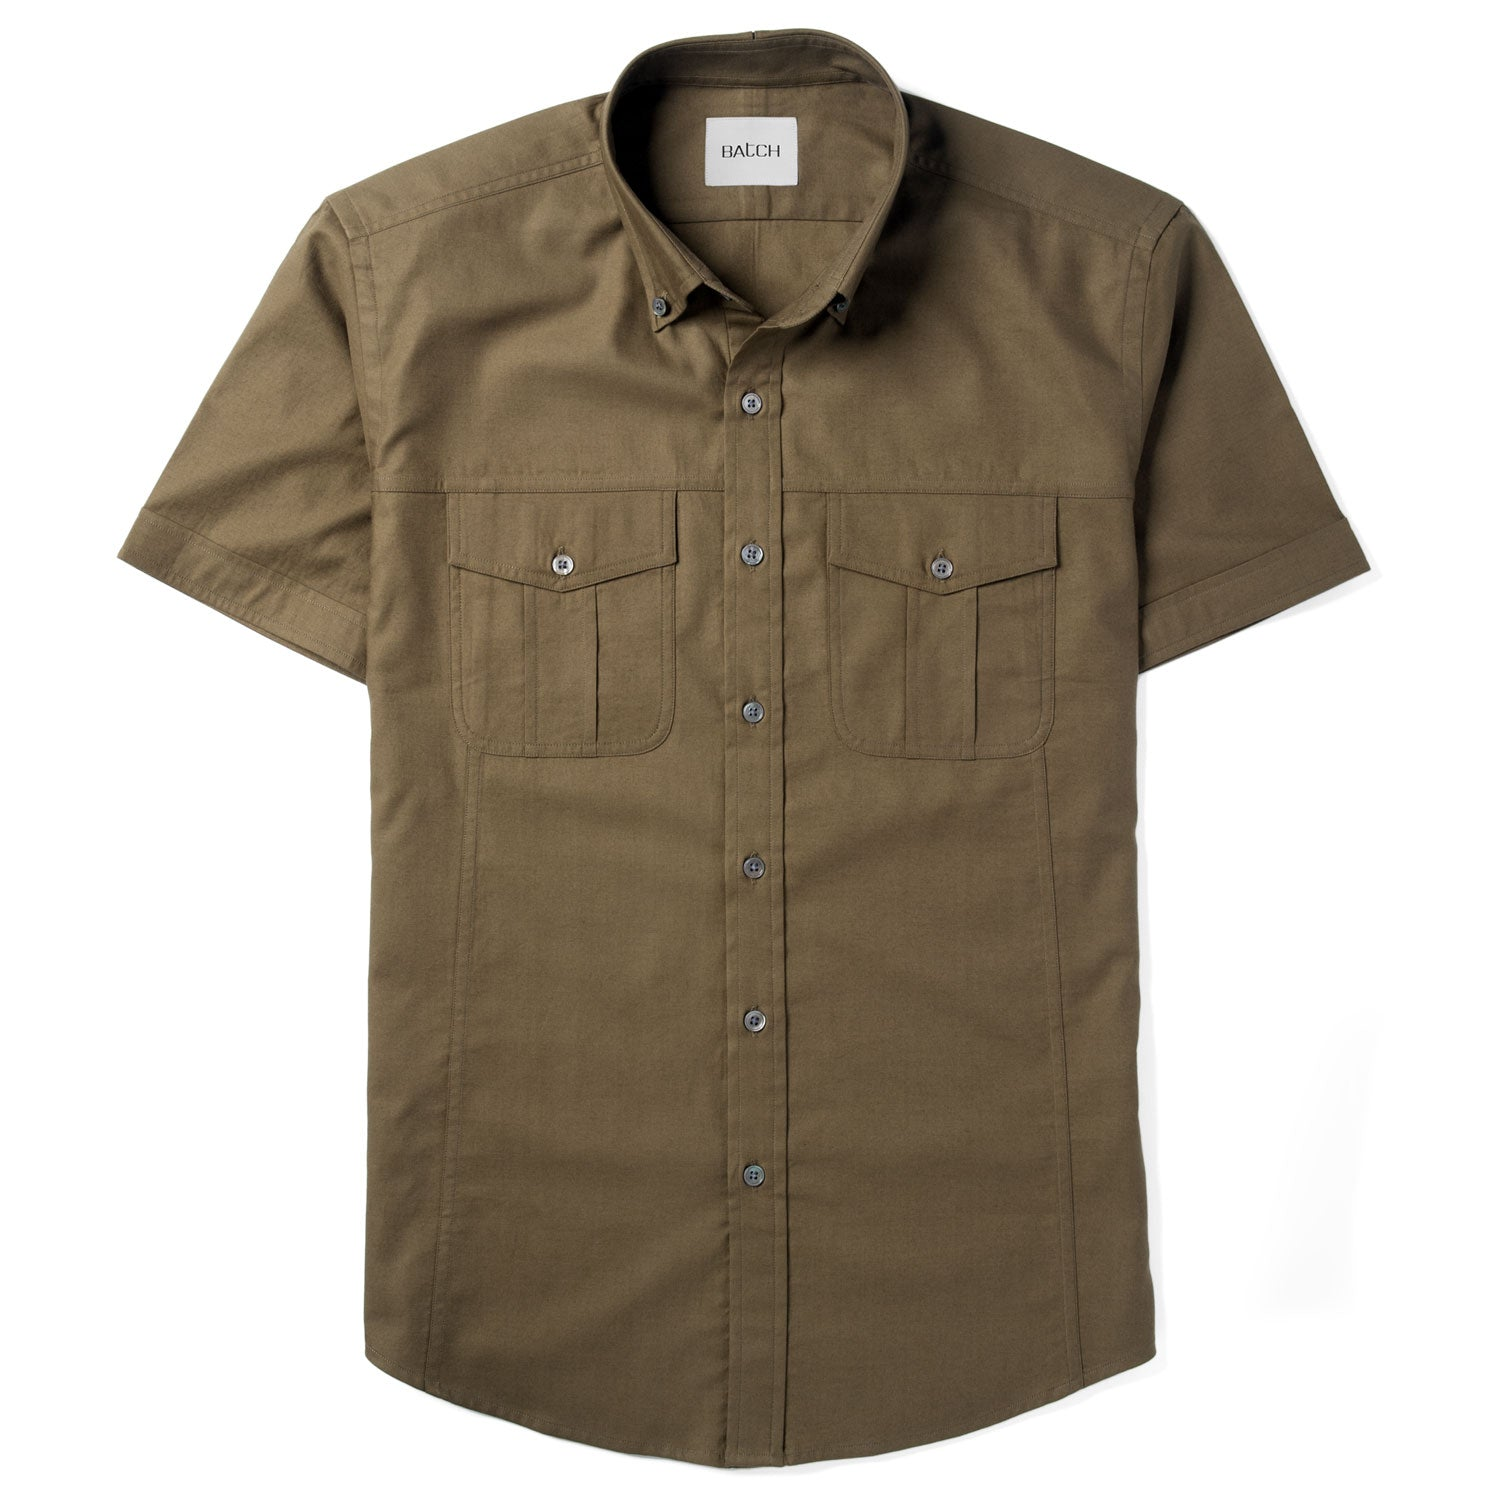 Editor Short Sleeve Utility Shirt – Fatigue Green Mercerized Cotton